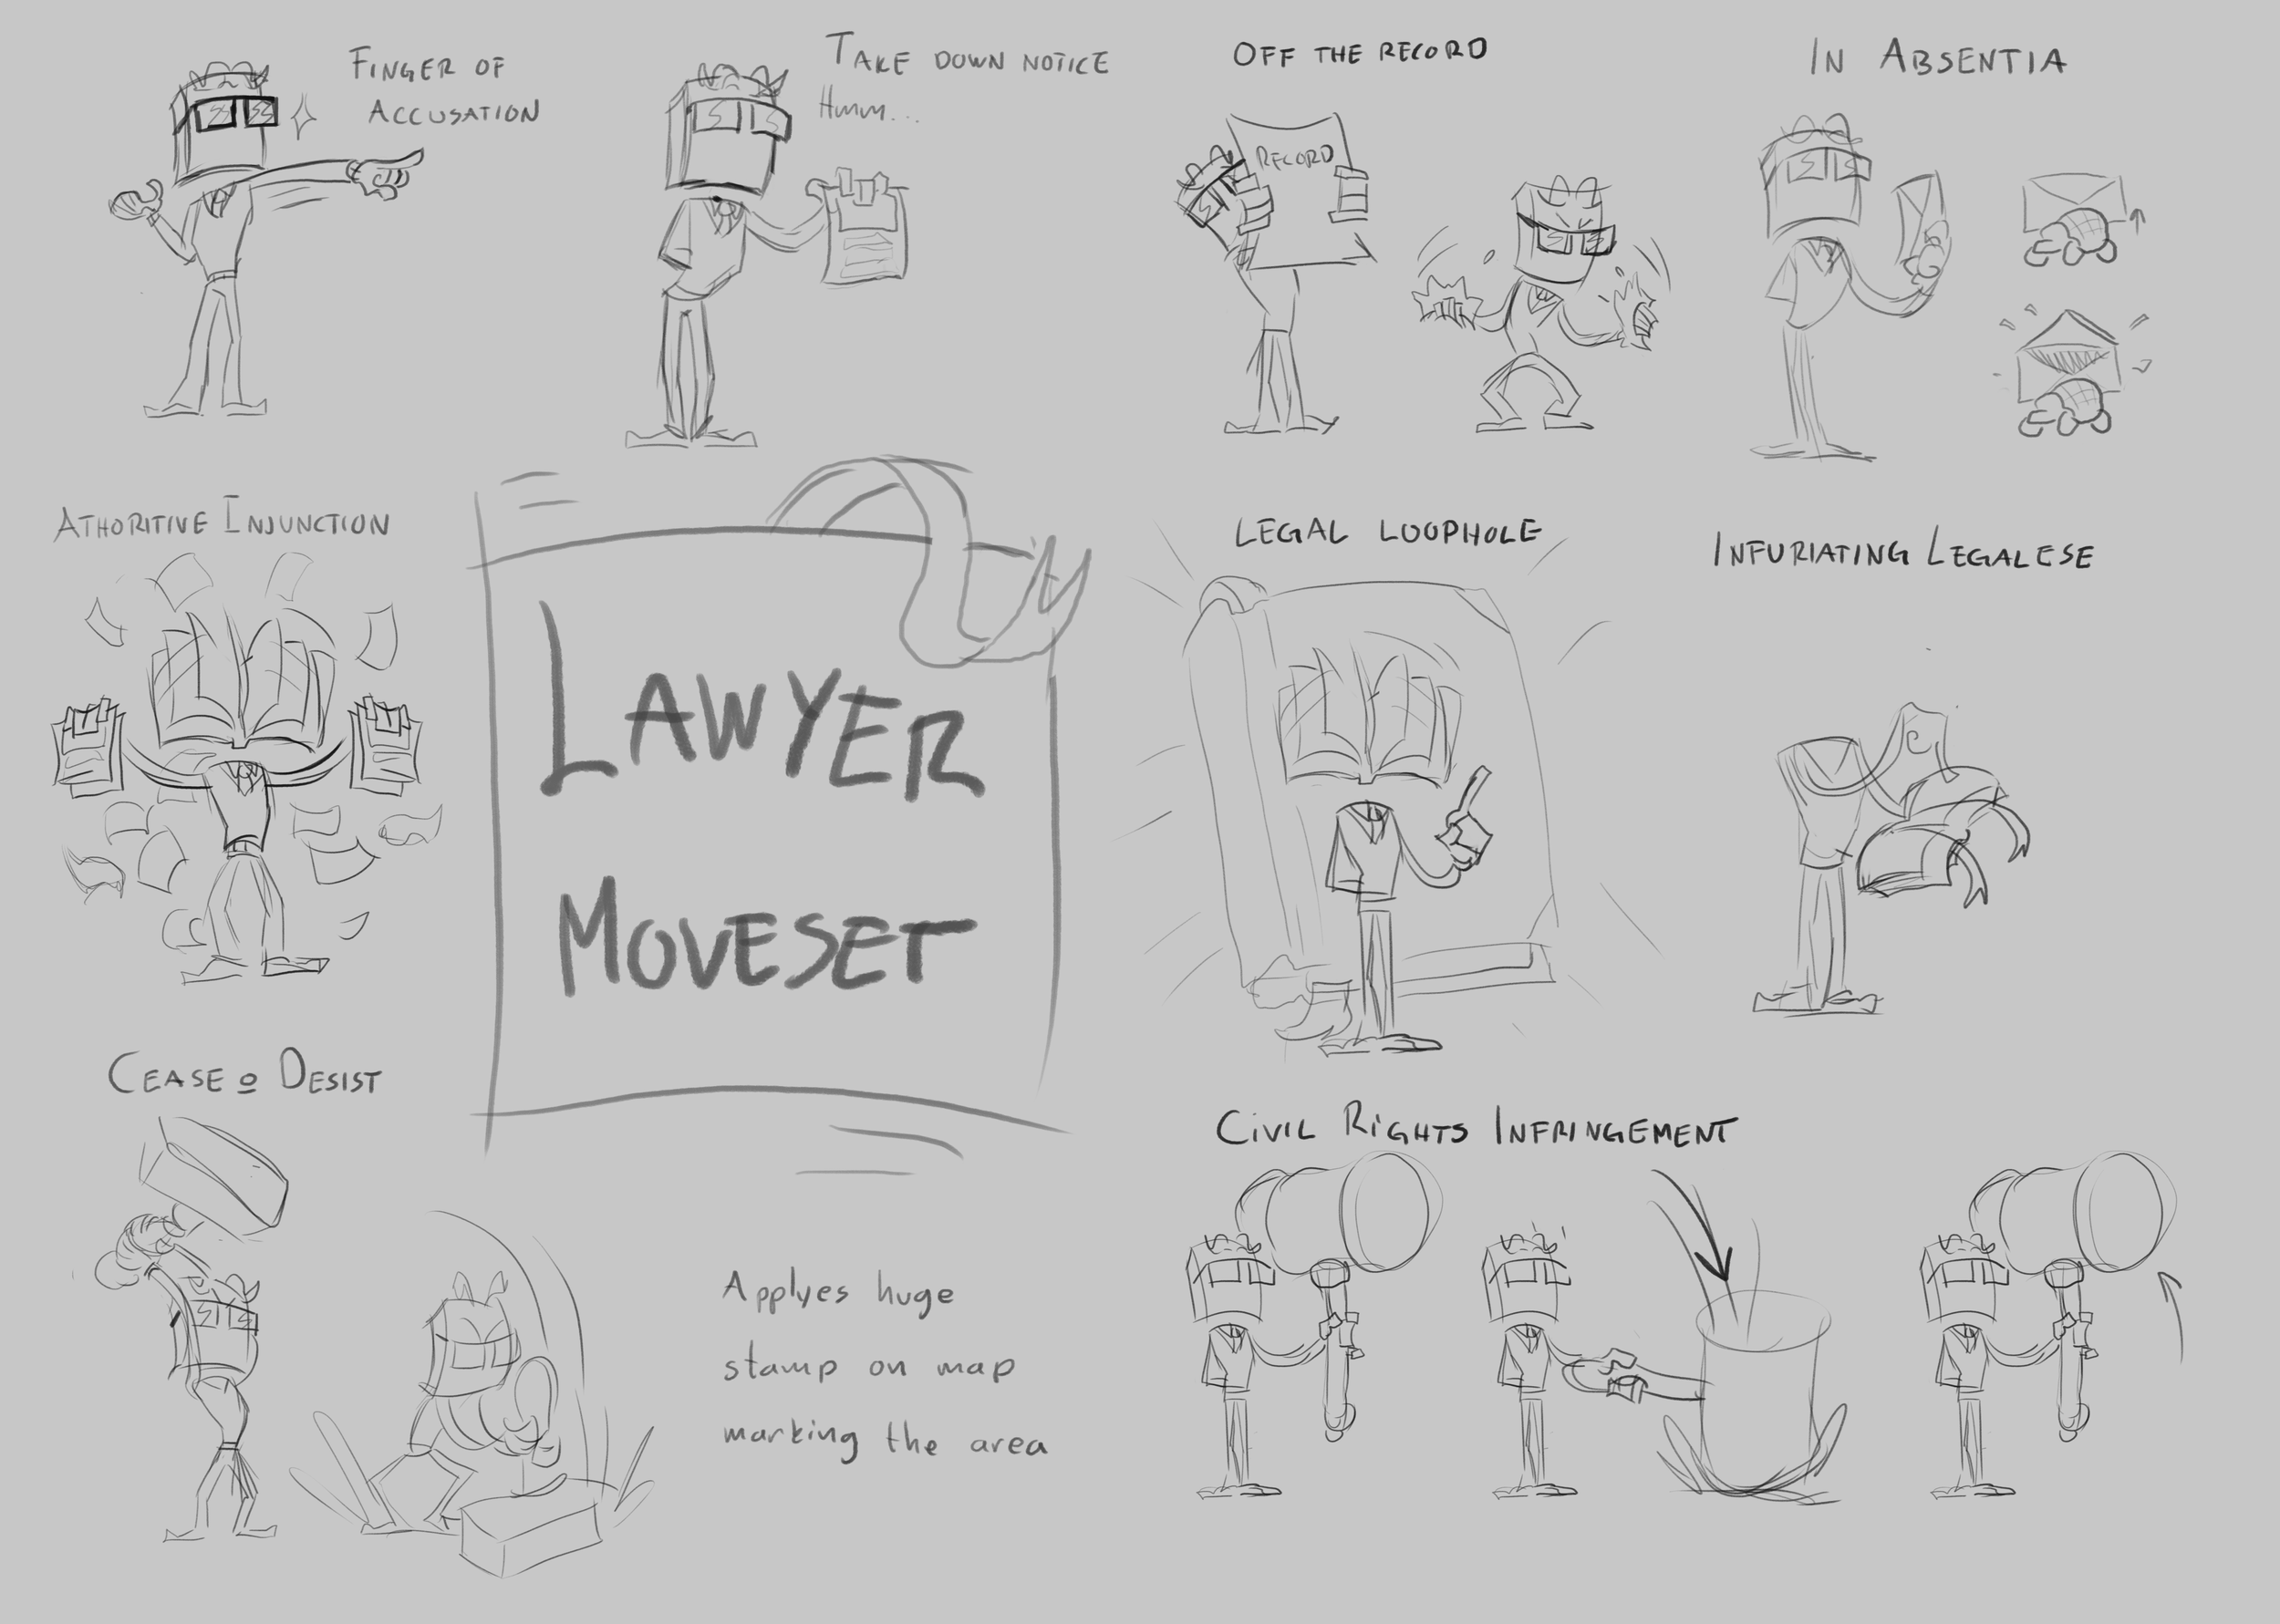 LAWYER_Moveset.png